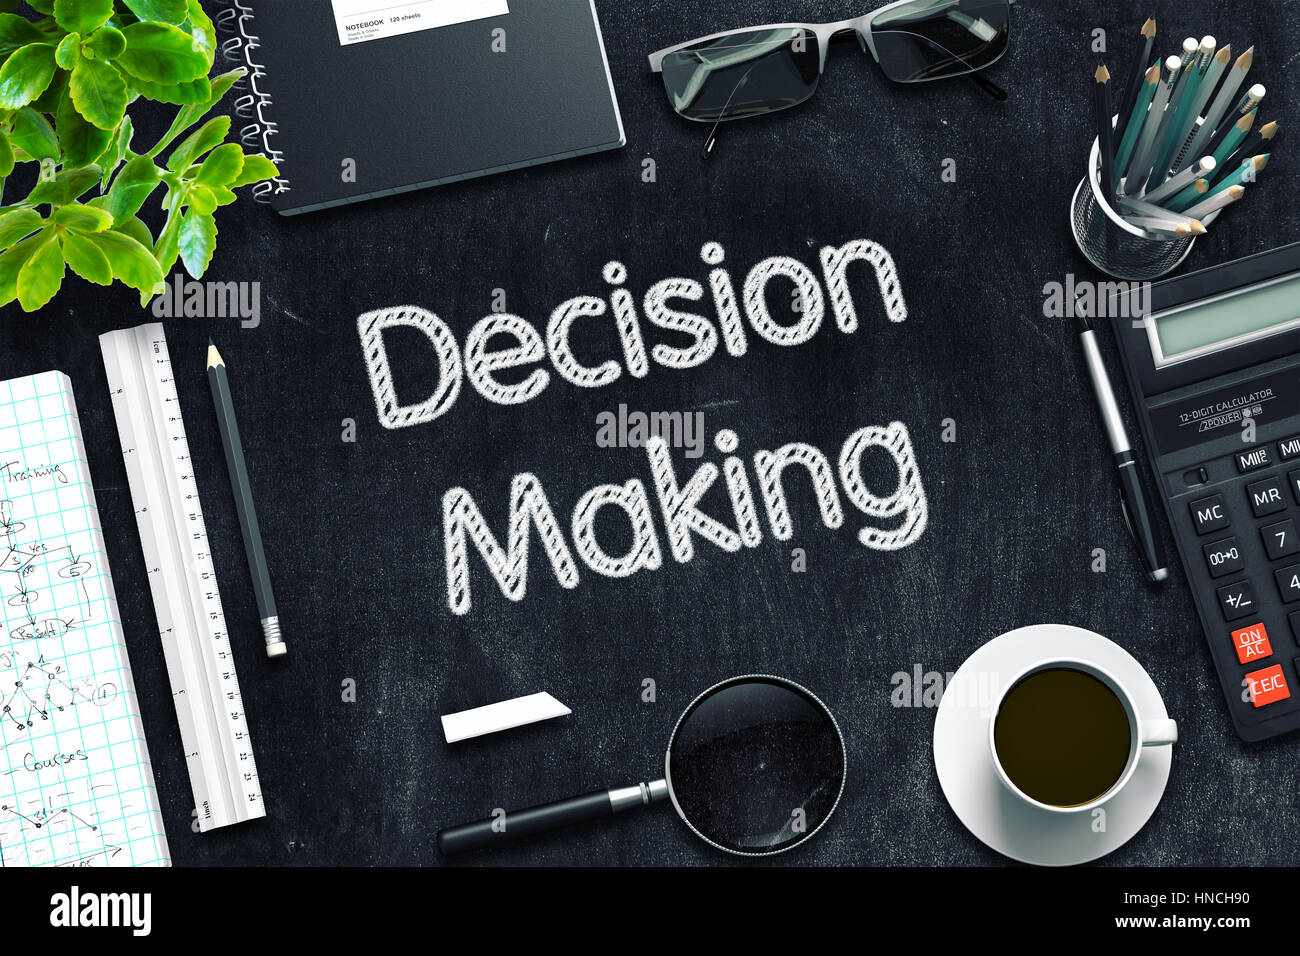 Decision Making Concept on Black Chalkboard. 3D Rendering. Stock Photo